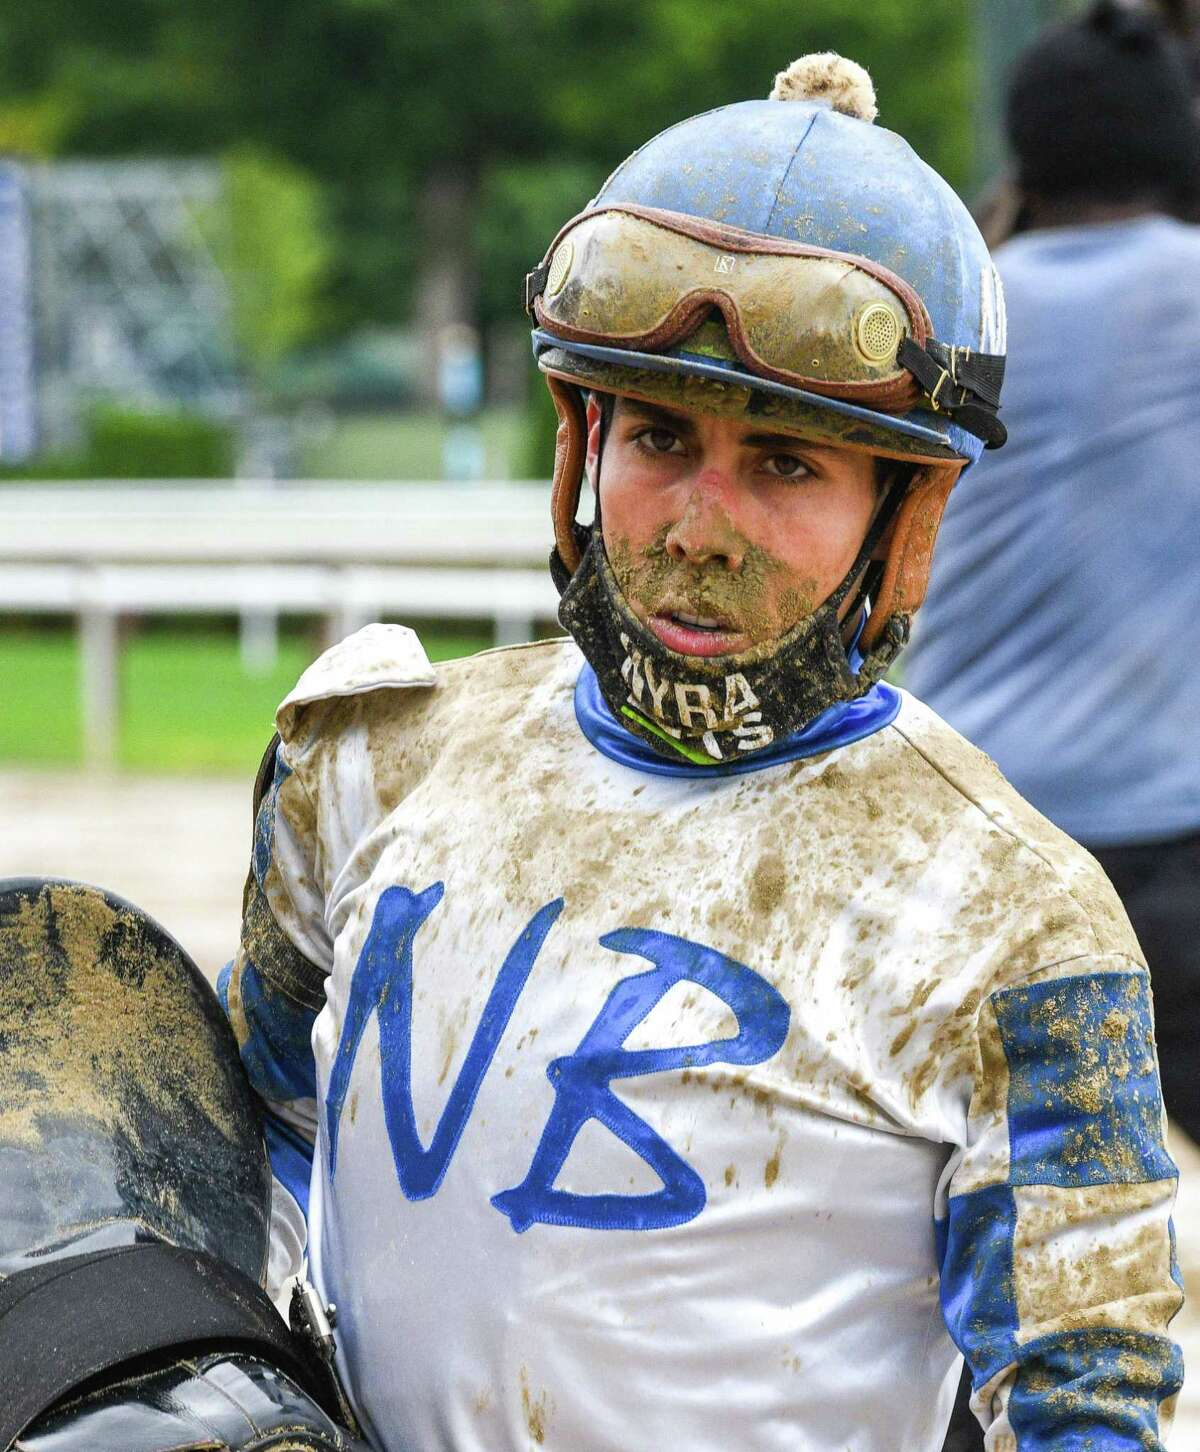 Jockey Irad Ortiz, Jr. wearing some mud after the eighth race on Wednesday, Sept. 2, 2020, at Saratoga Race Course in Saratoga Springs, N.Y. (Mike Kane/Special to the Times Union)